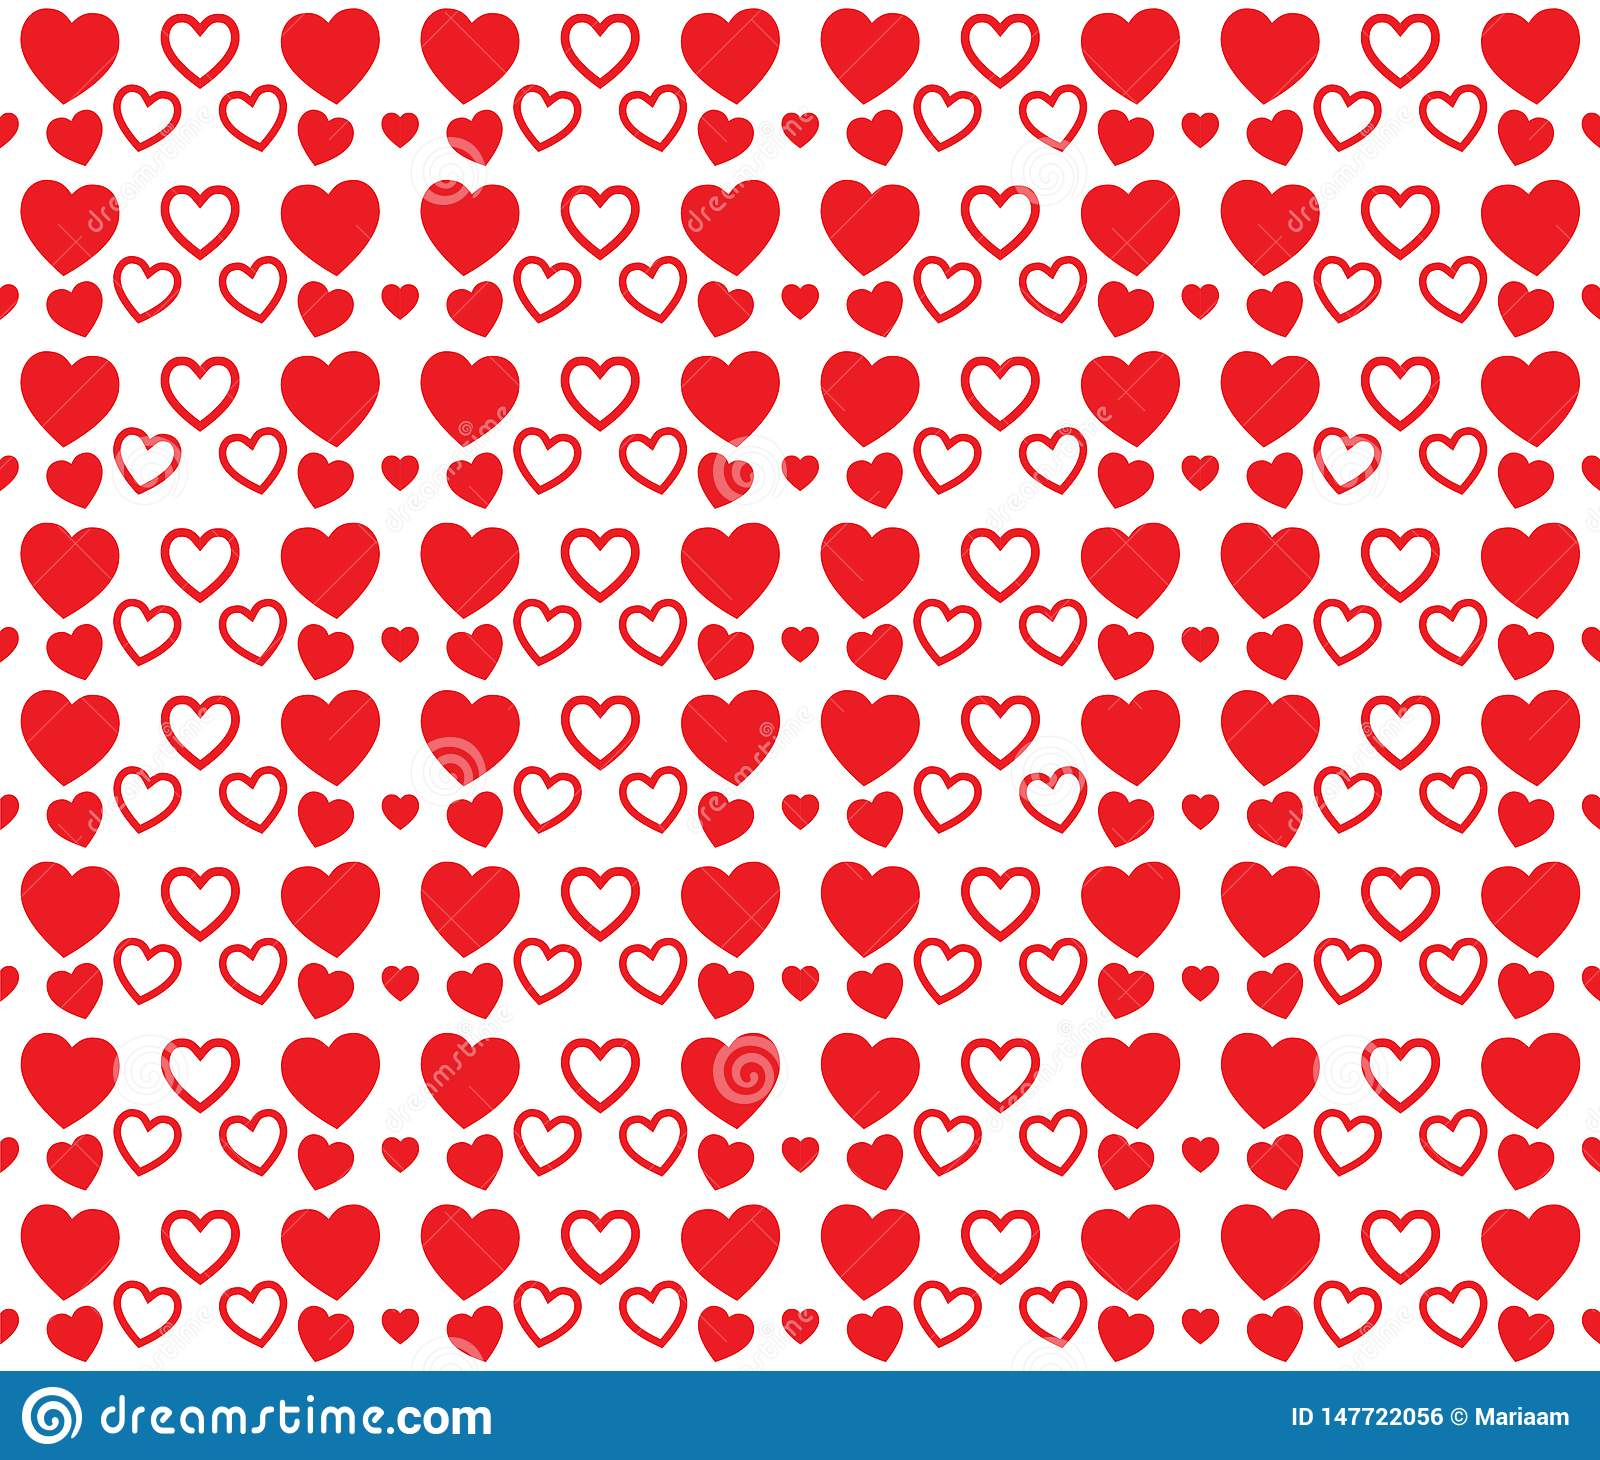 Red heart texture for Valentines Day. Clean and lovely background design.